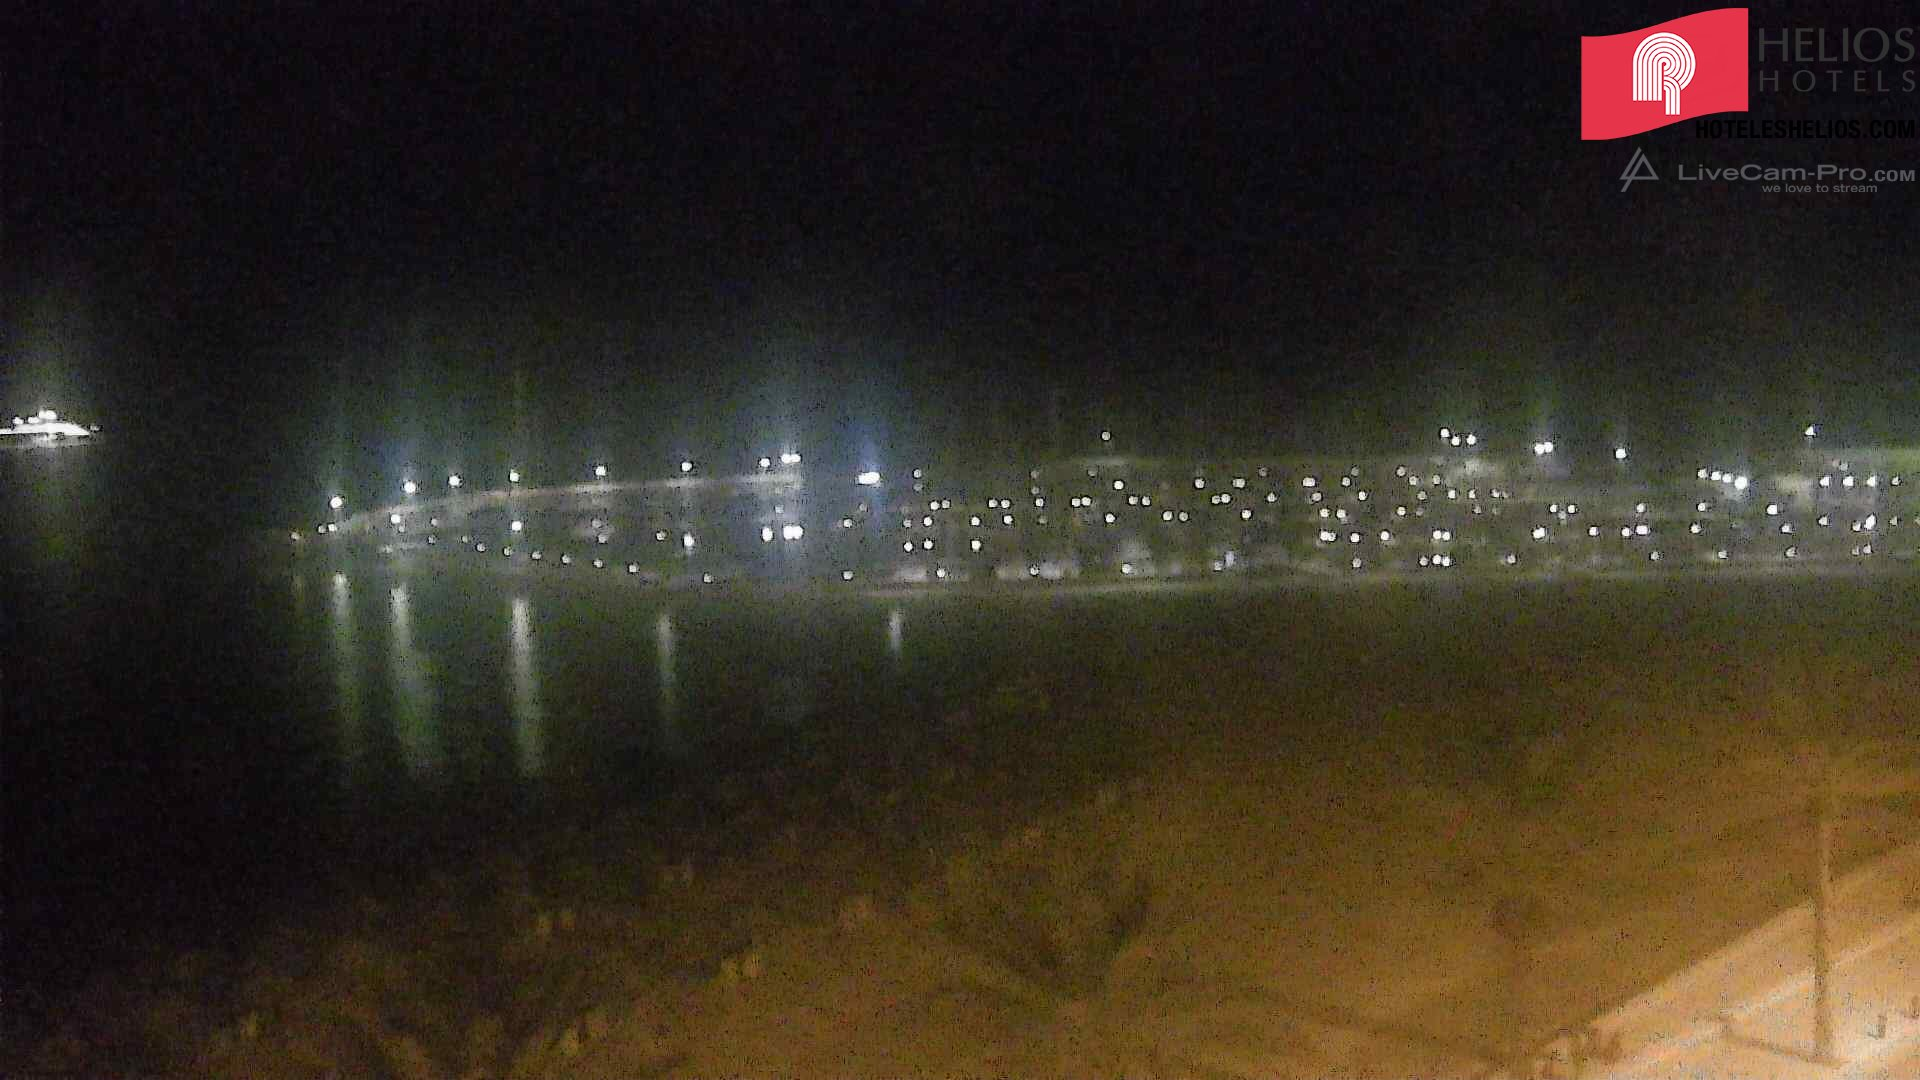 Webcam 2 der Playa de Palma. Live Webcam